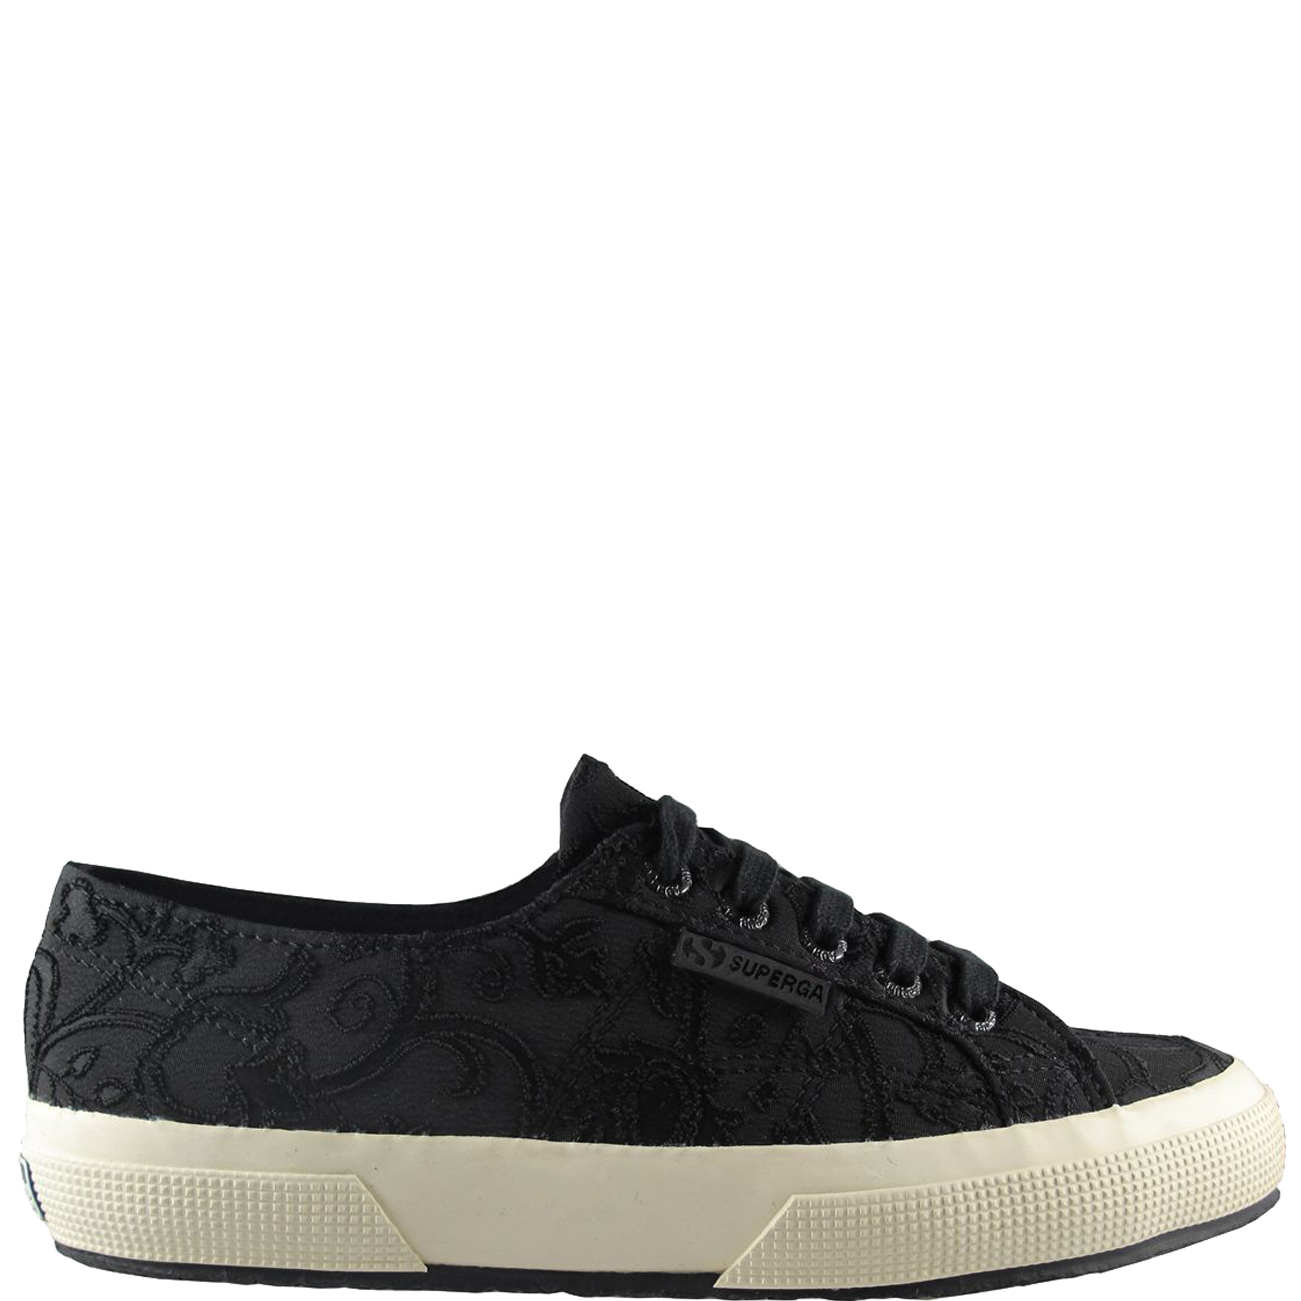 Superga Embroidery Flower Crepe